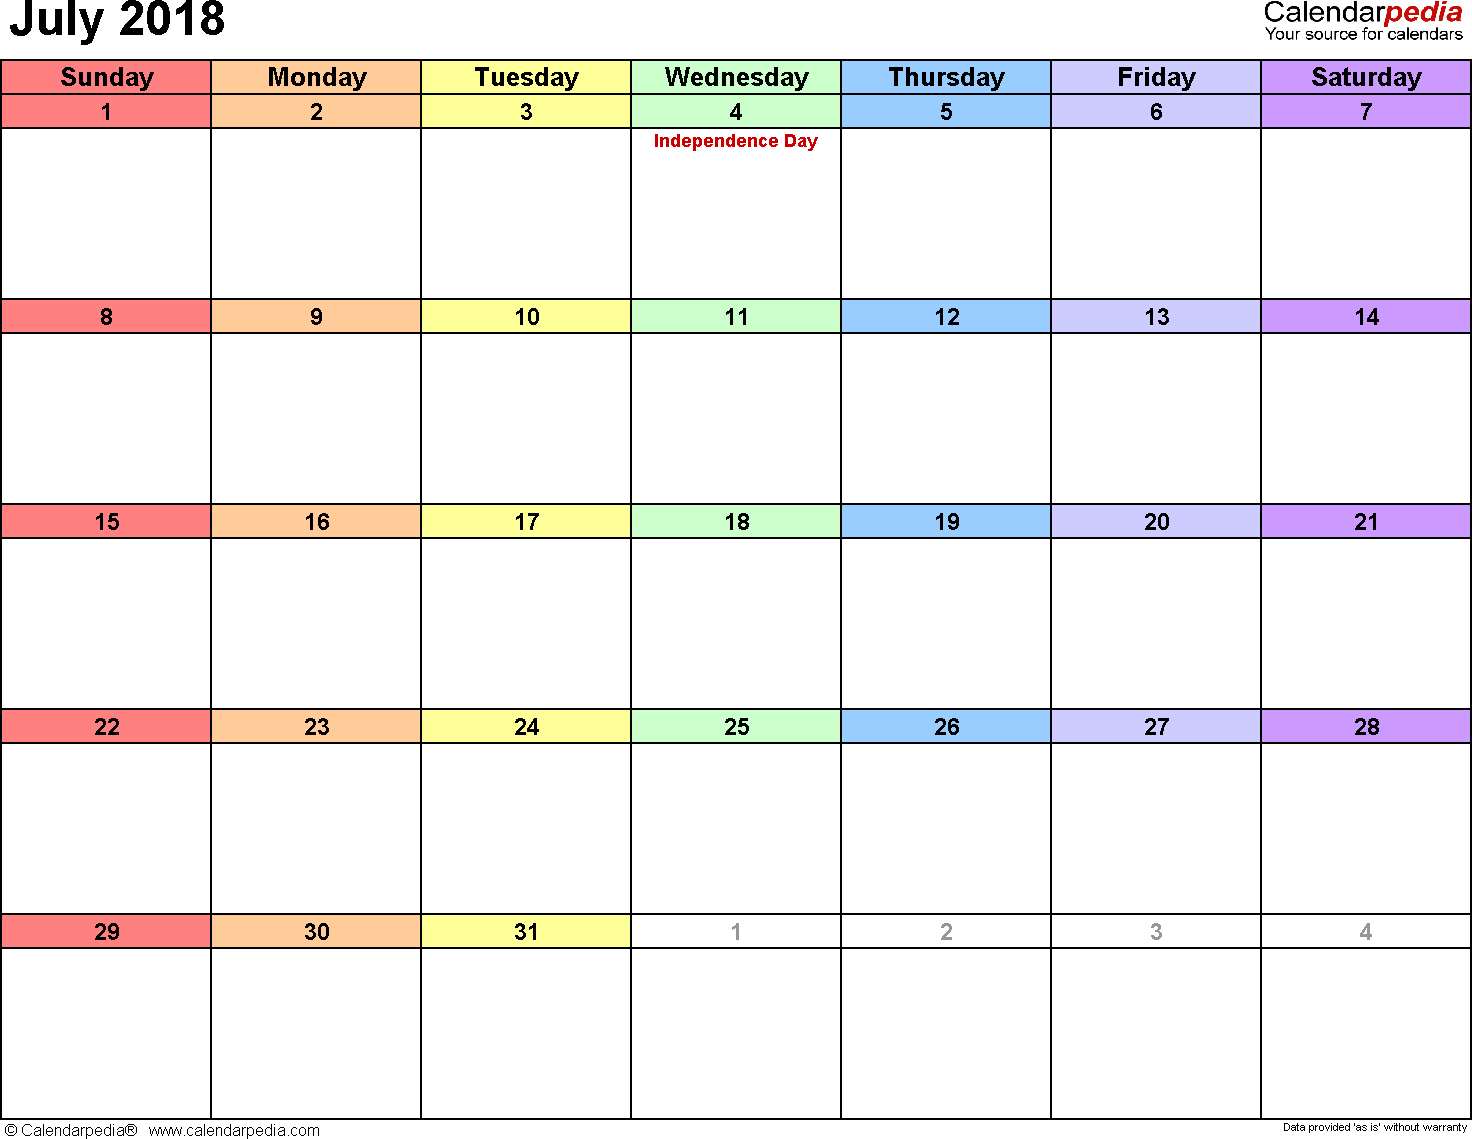 July 2018 calendar printable template